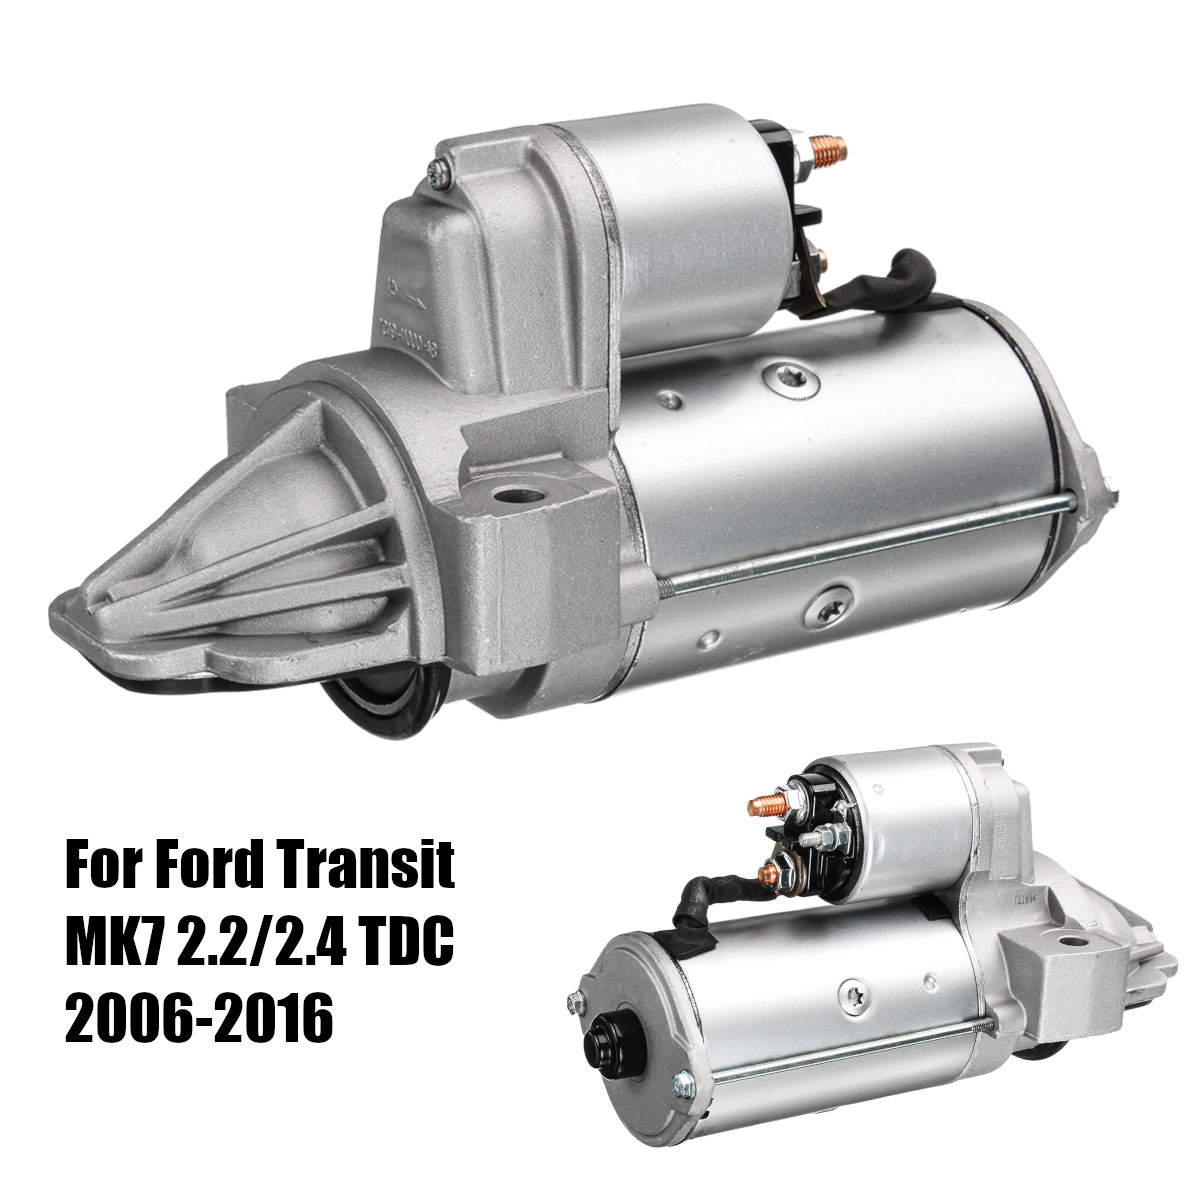 Car Electric Starter Motor 0001109205 0001109305 For FORD TRANSIT MK7 2.2/2.4 TDC 2006-2016 цена